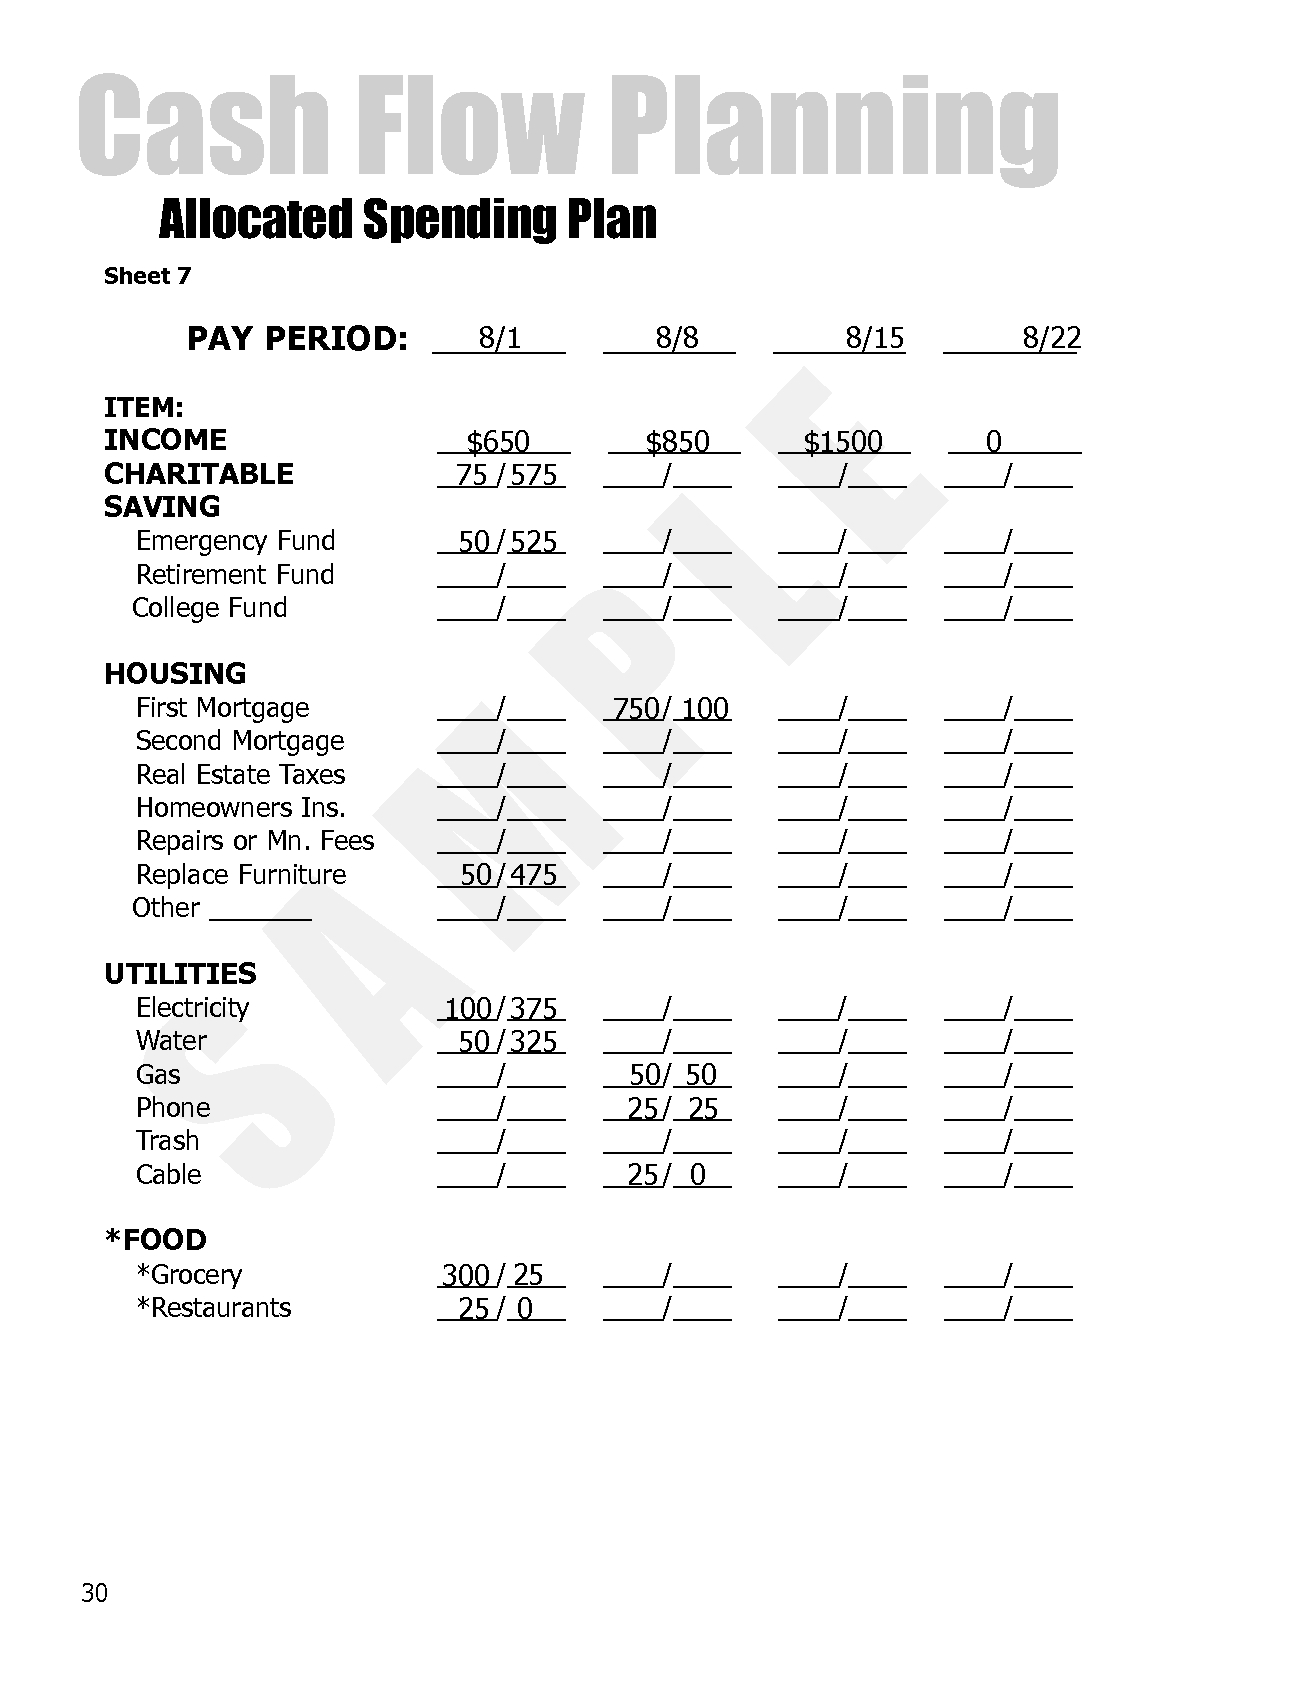 How To Use Dave Ramsey's Allocated Spending Plan   Finance Inside Dave Ramsey Allocated Spending Plan Excel Spreadsheet